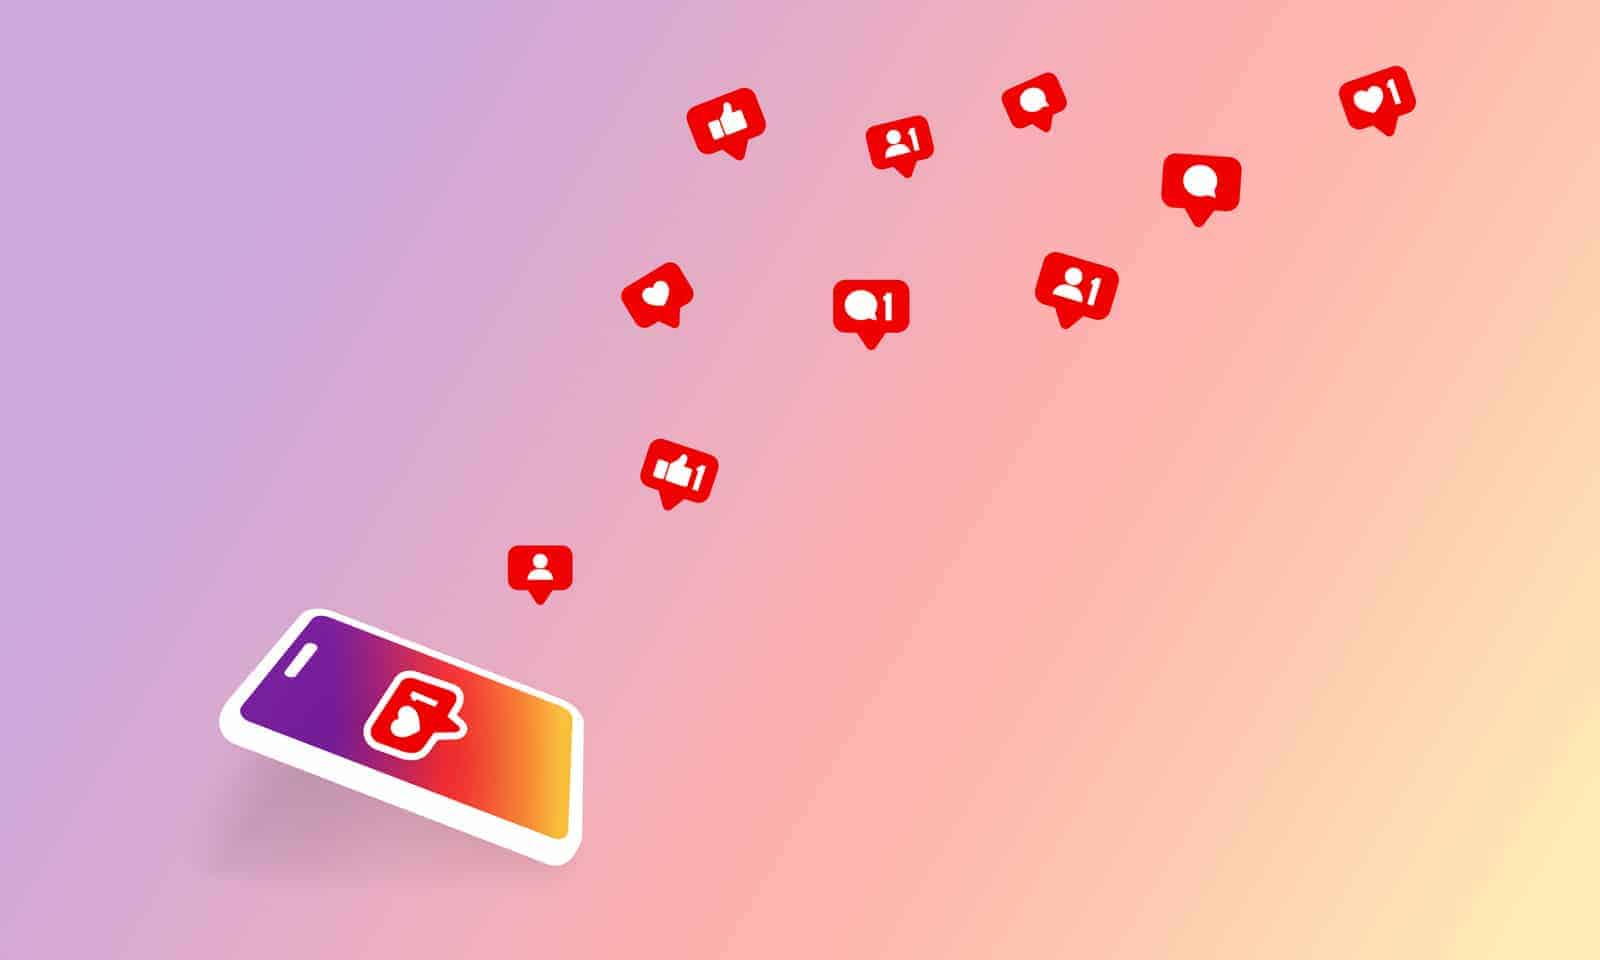 Social media notification icon. Follow, like, new comments symbol. Social networking. Vector on isolated background.